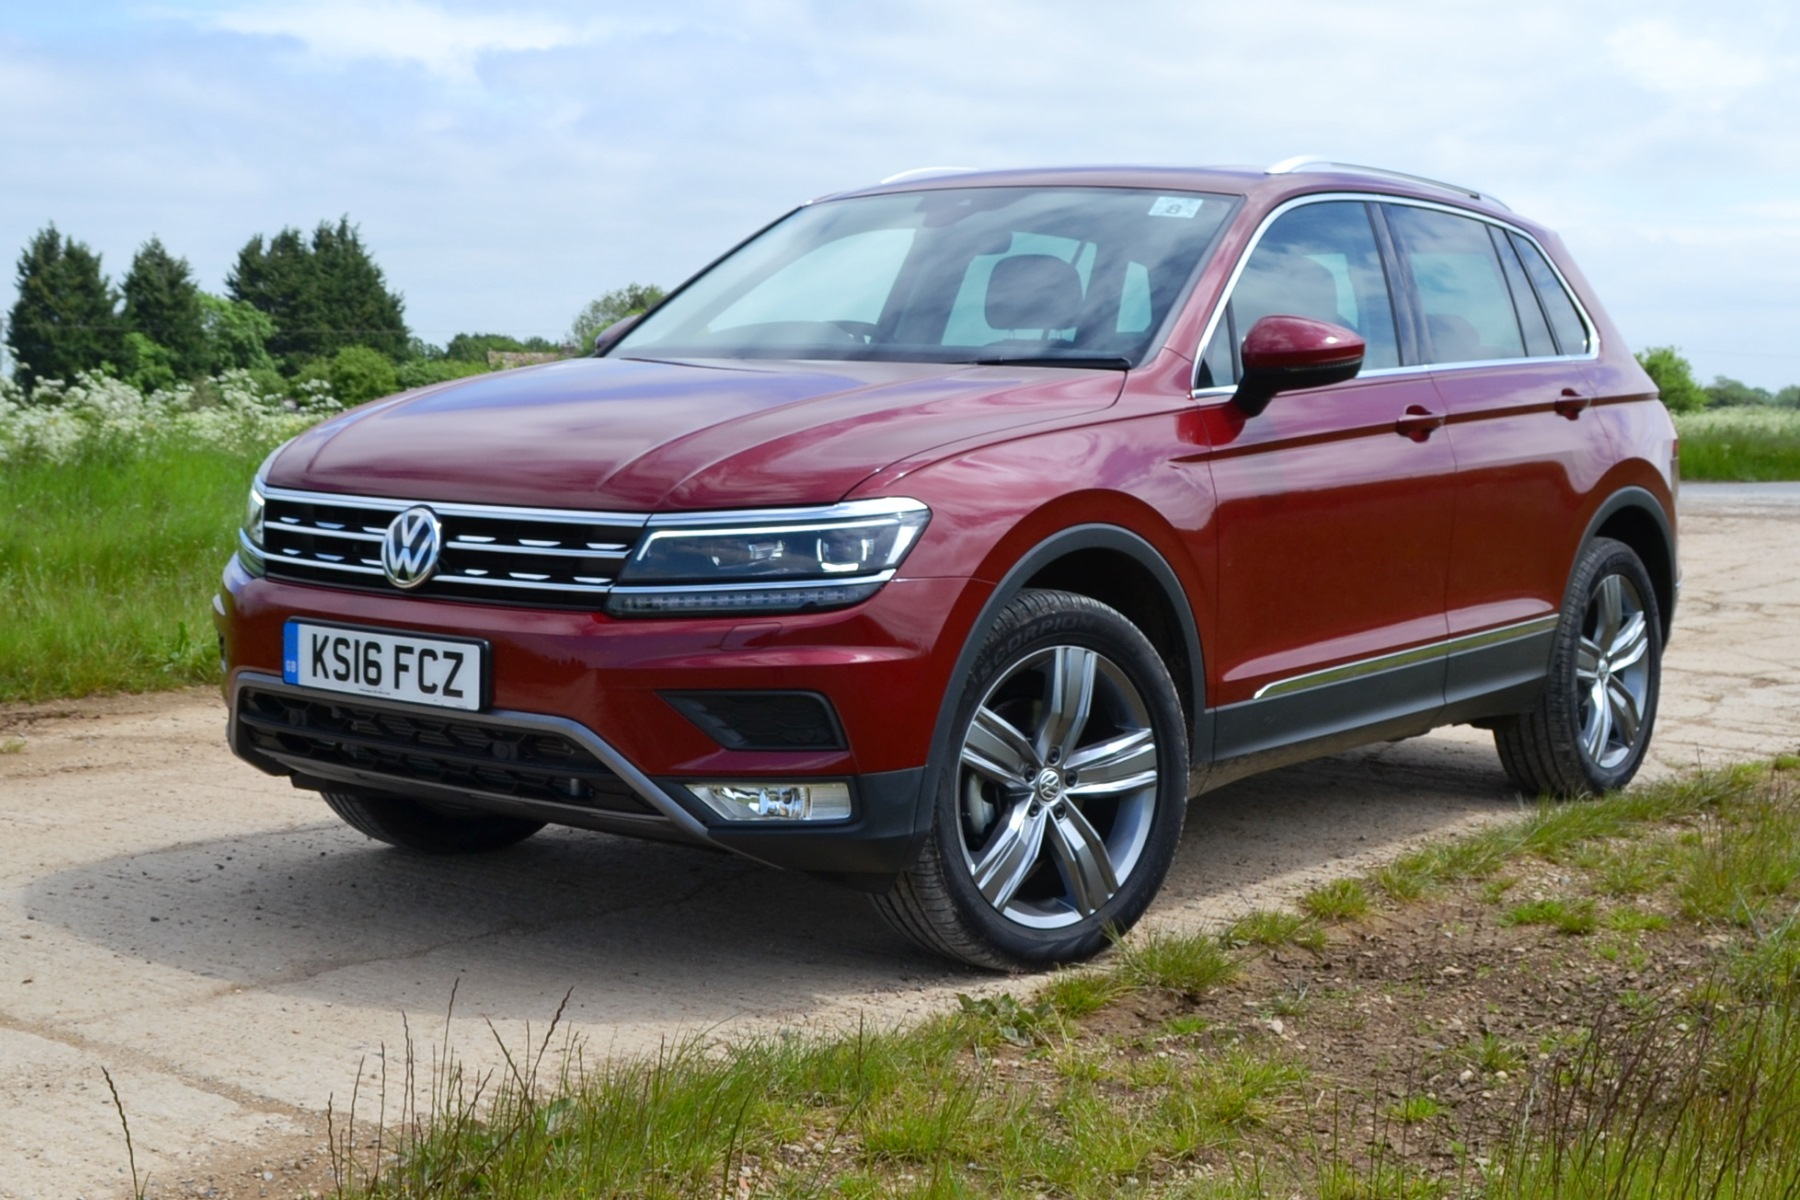 volkswagen tiguan review automotive blog. Black Bedroom Furniture Sets. Home Design Ideas